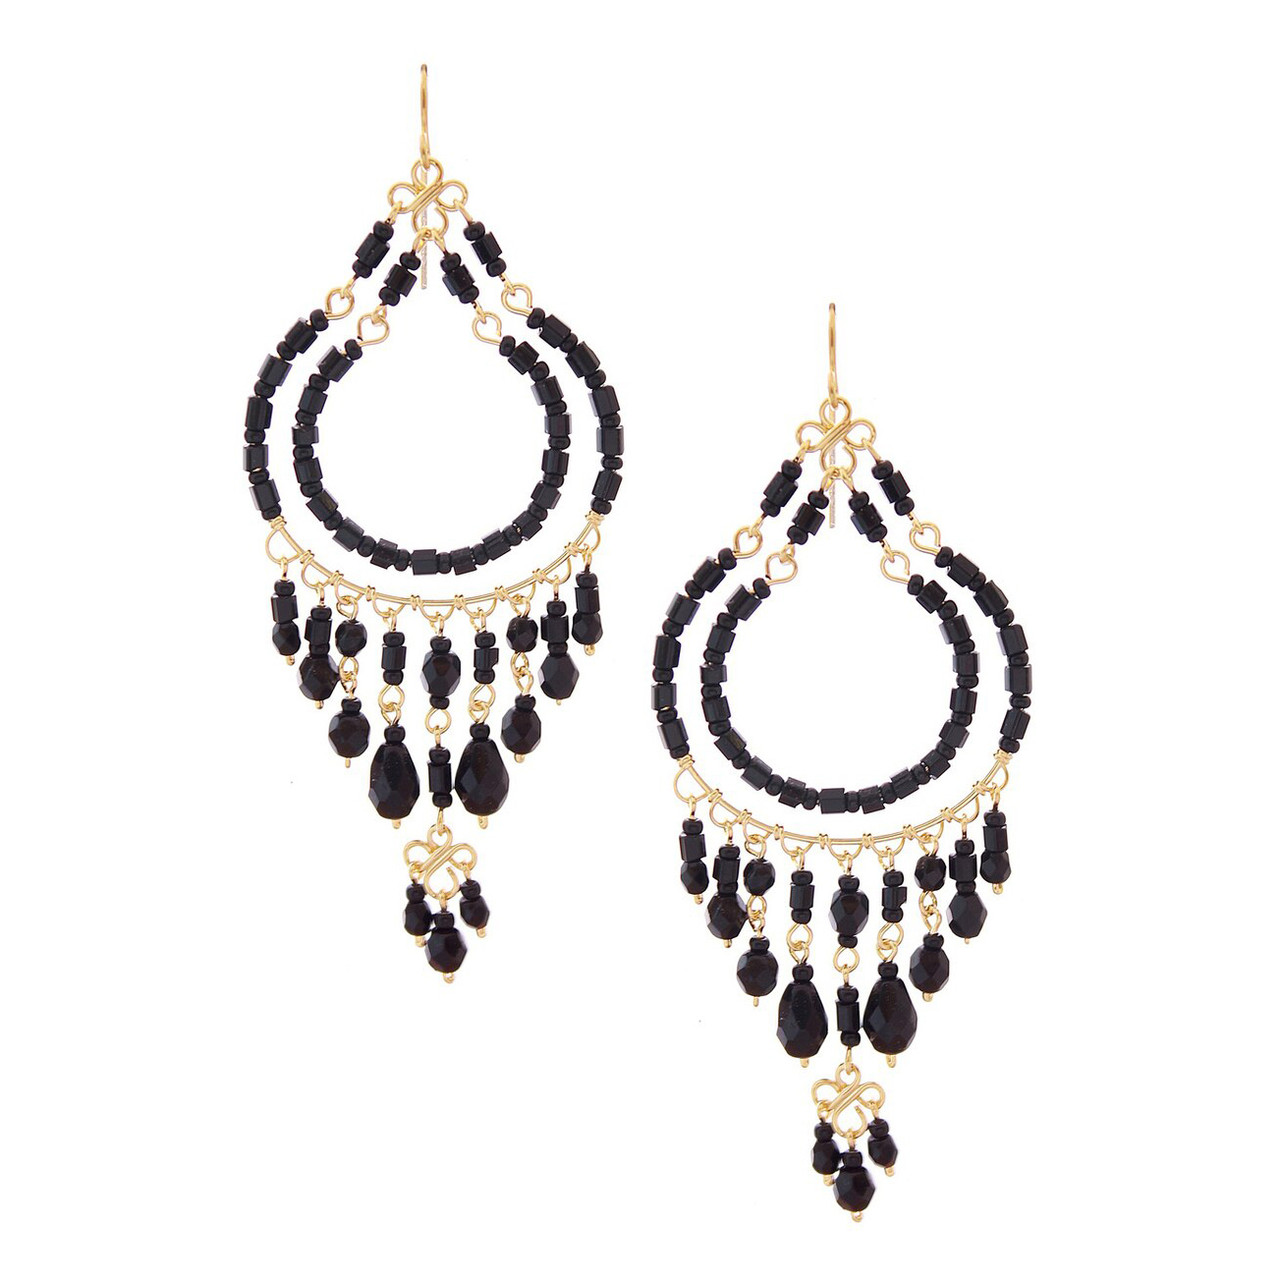 1c16443f5b4249 Handmade Bohemian Gold Plated Double Hoop Chandelier Earrings / CLE G B96-14